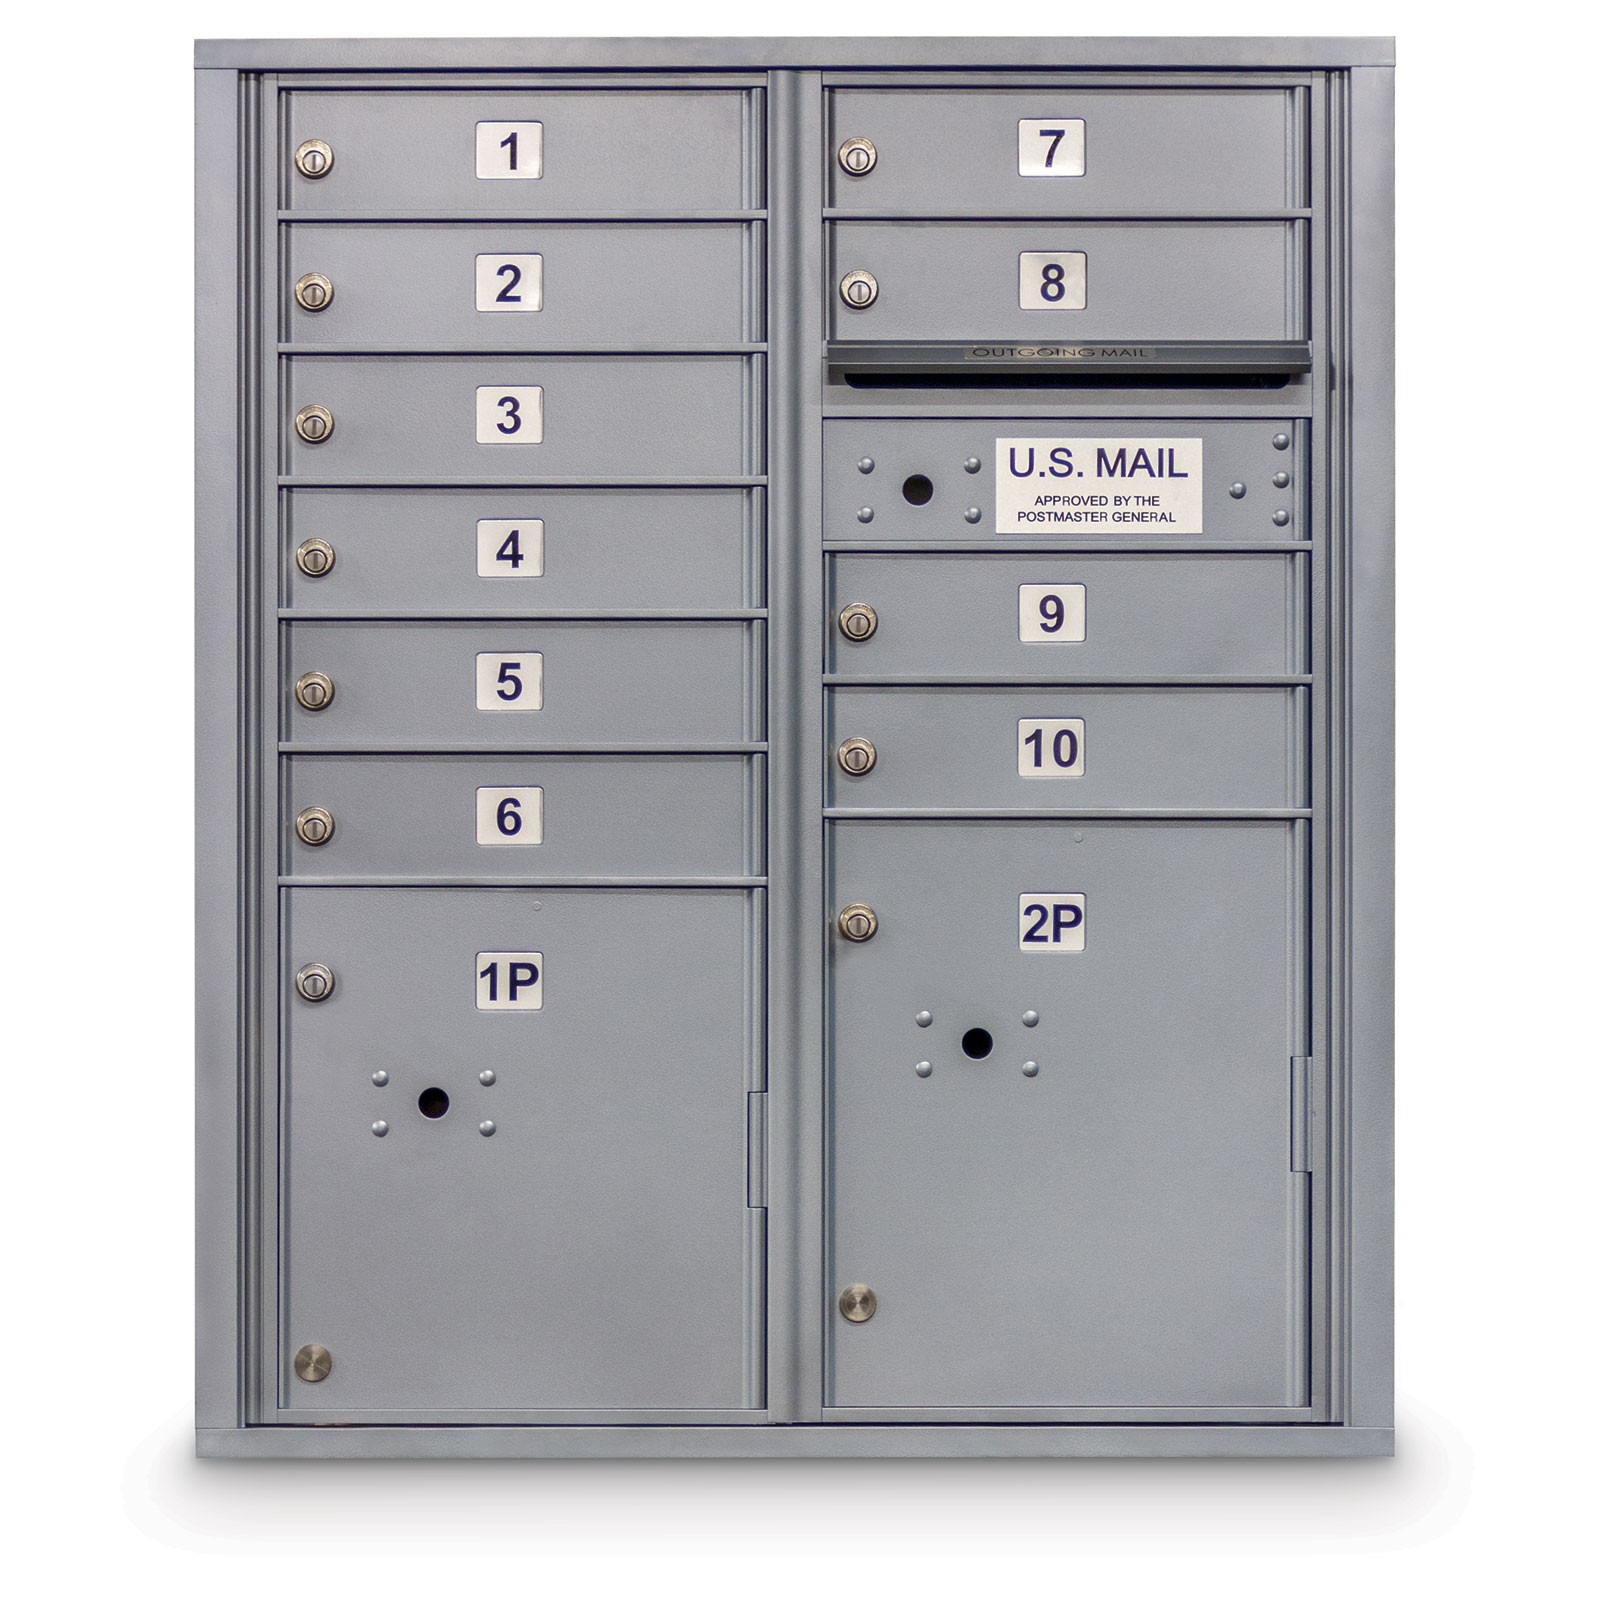 10 Door 4C Horizontal Mailbox - 2 Parcel Lockers - ADA Compliant